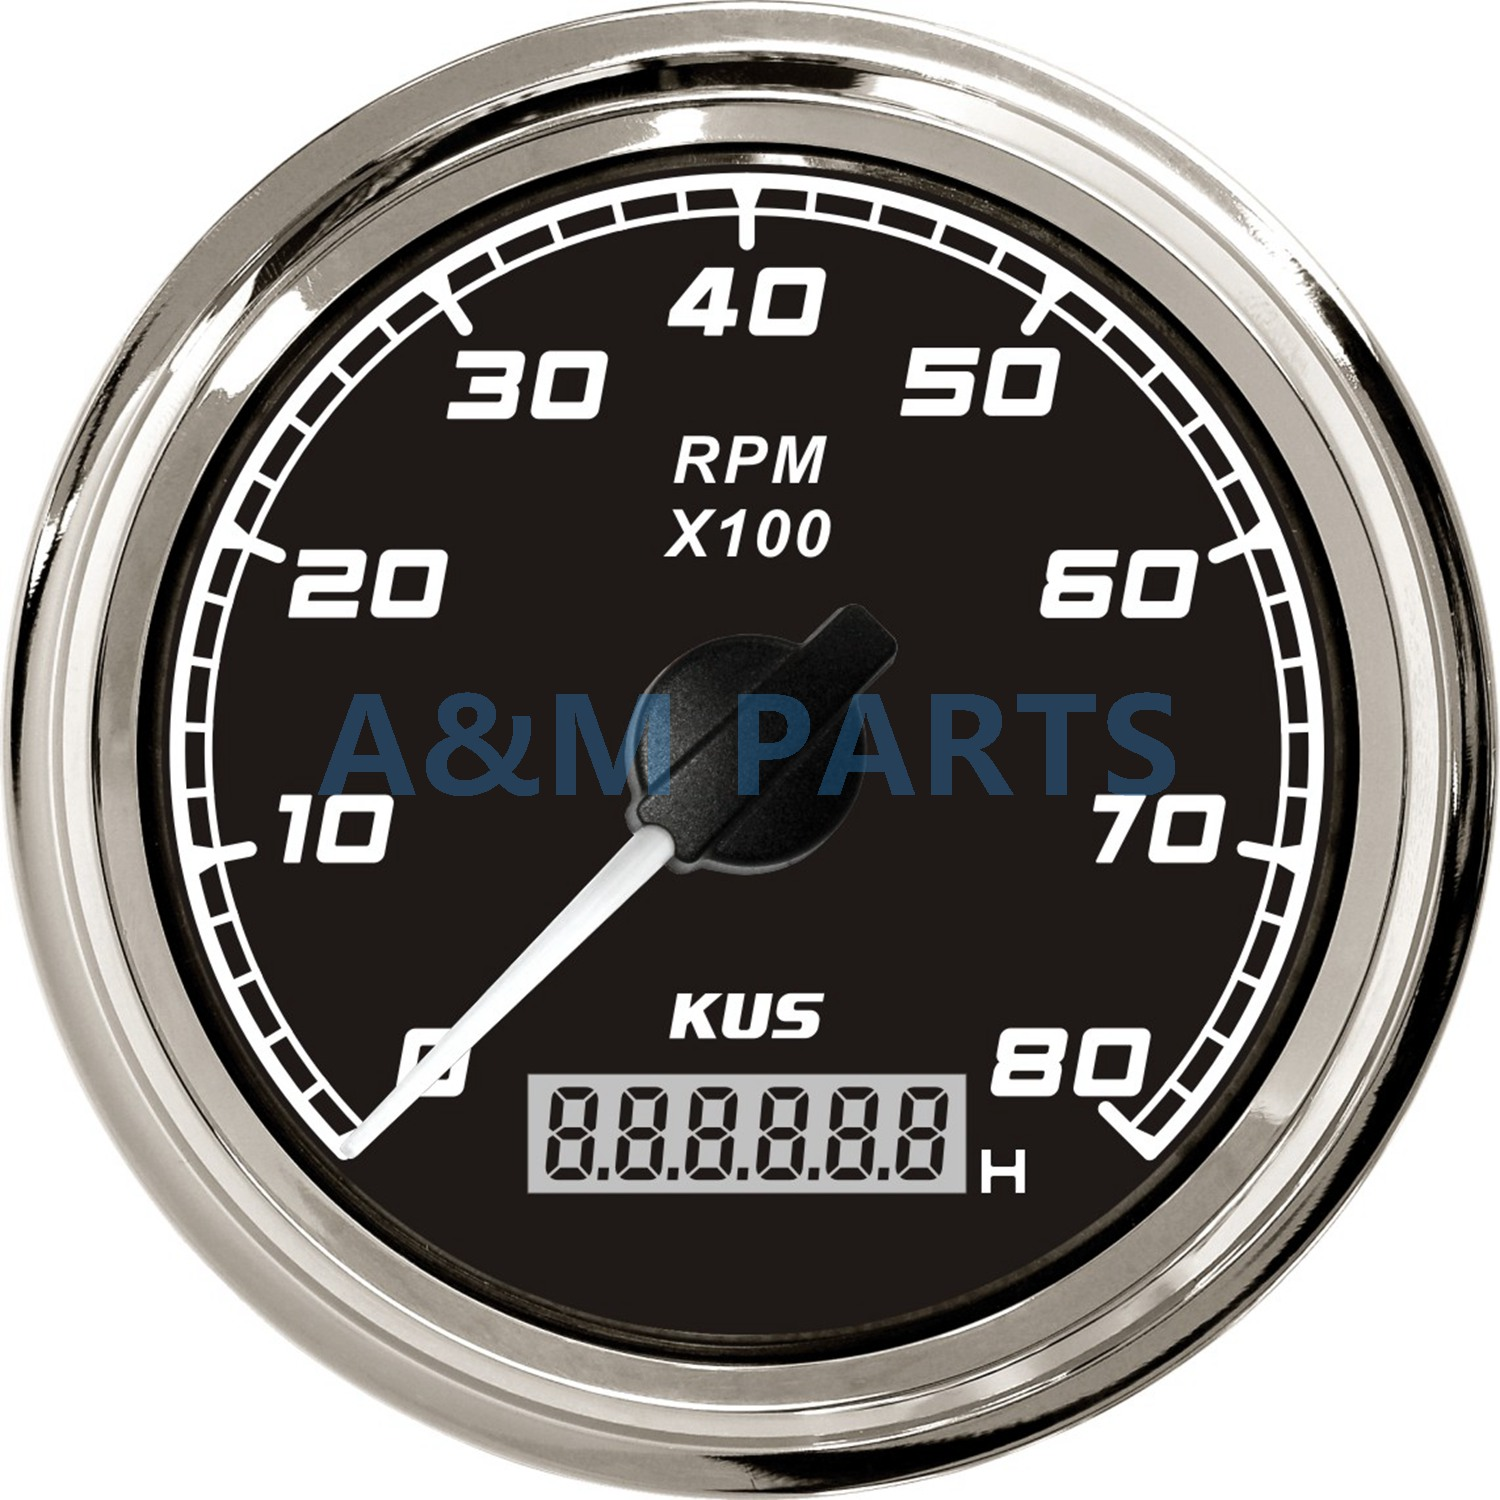 KUS Boat Tachometer With LCD Digital Hourmeter Marine Outboard Diesel Engine Motor Generator Tacho Meter Gauge 12V/24V 8000 RPM kus marine outboard tachometer with led hourmeter boat truck car rv waterproof rpm meter 6000 rpm 85mm speed ration 1 10